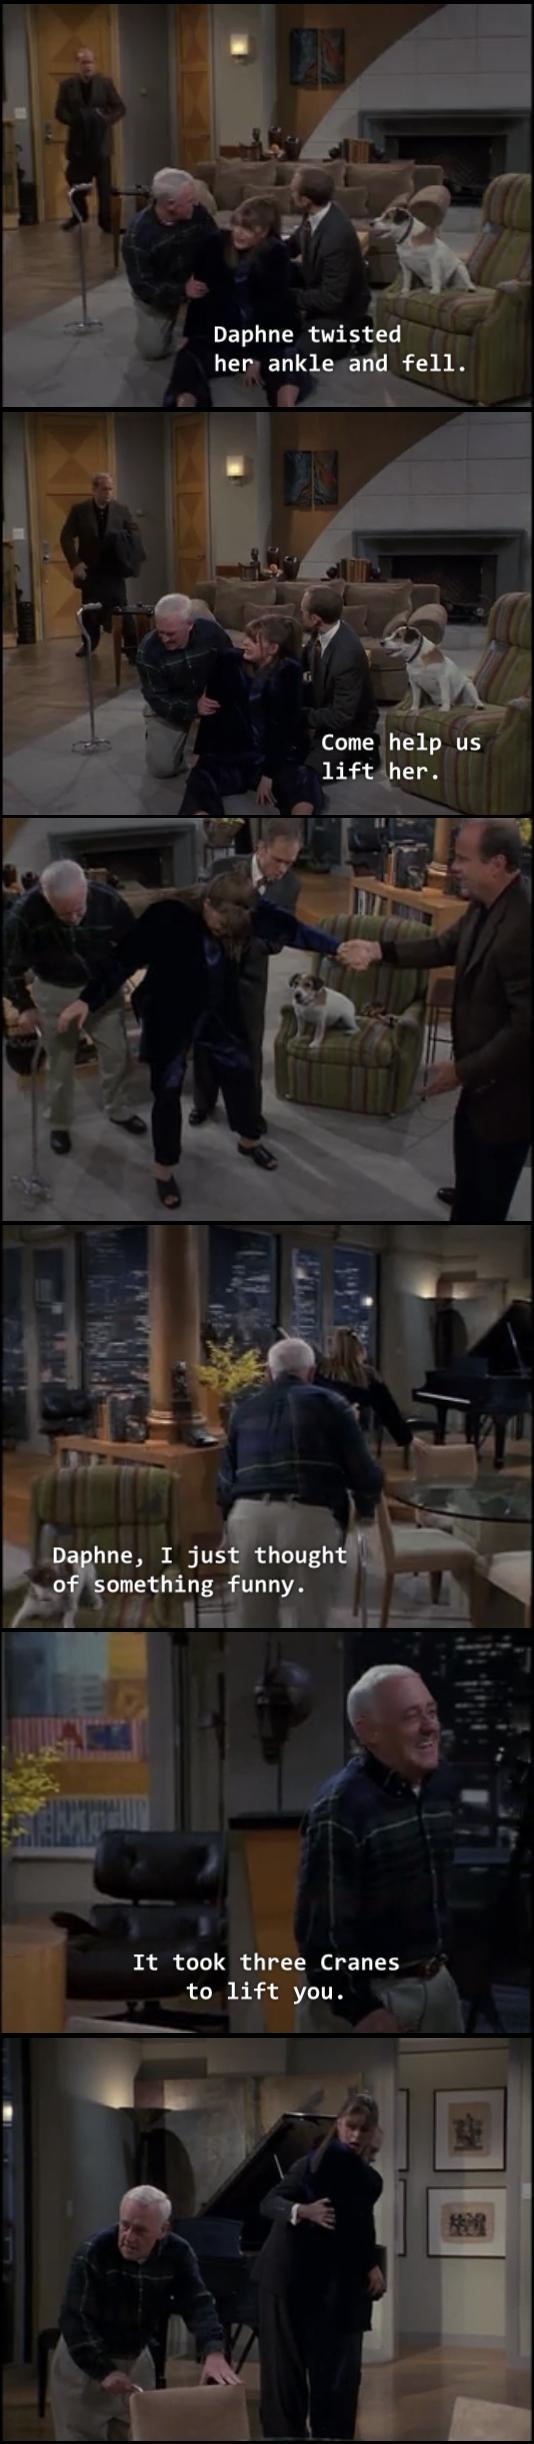 Marty Crane Is Definitely A Comedic Genius Meme Guy